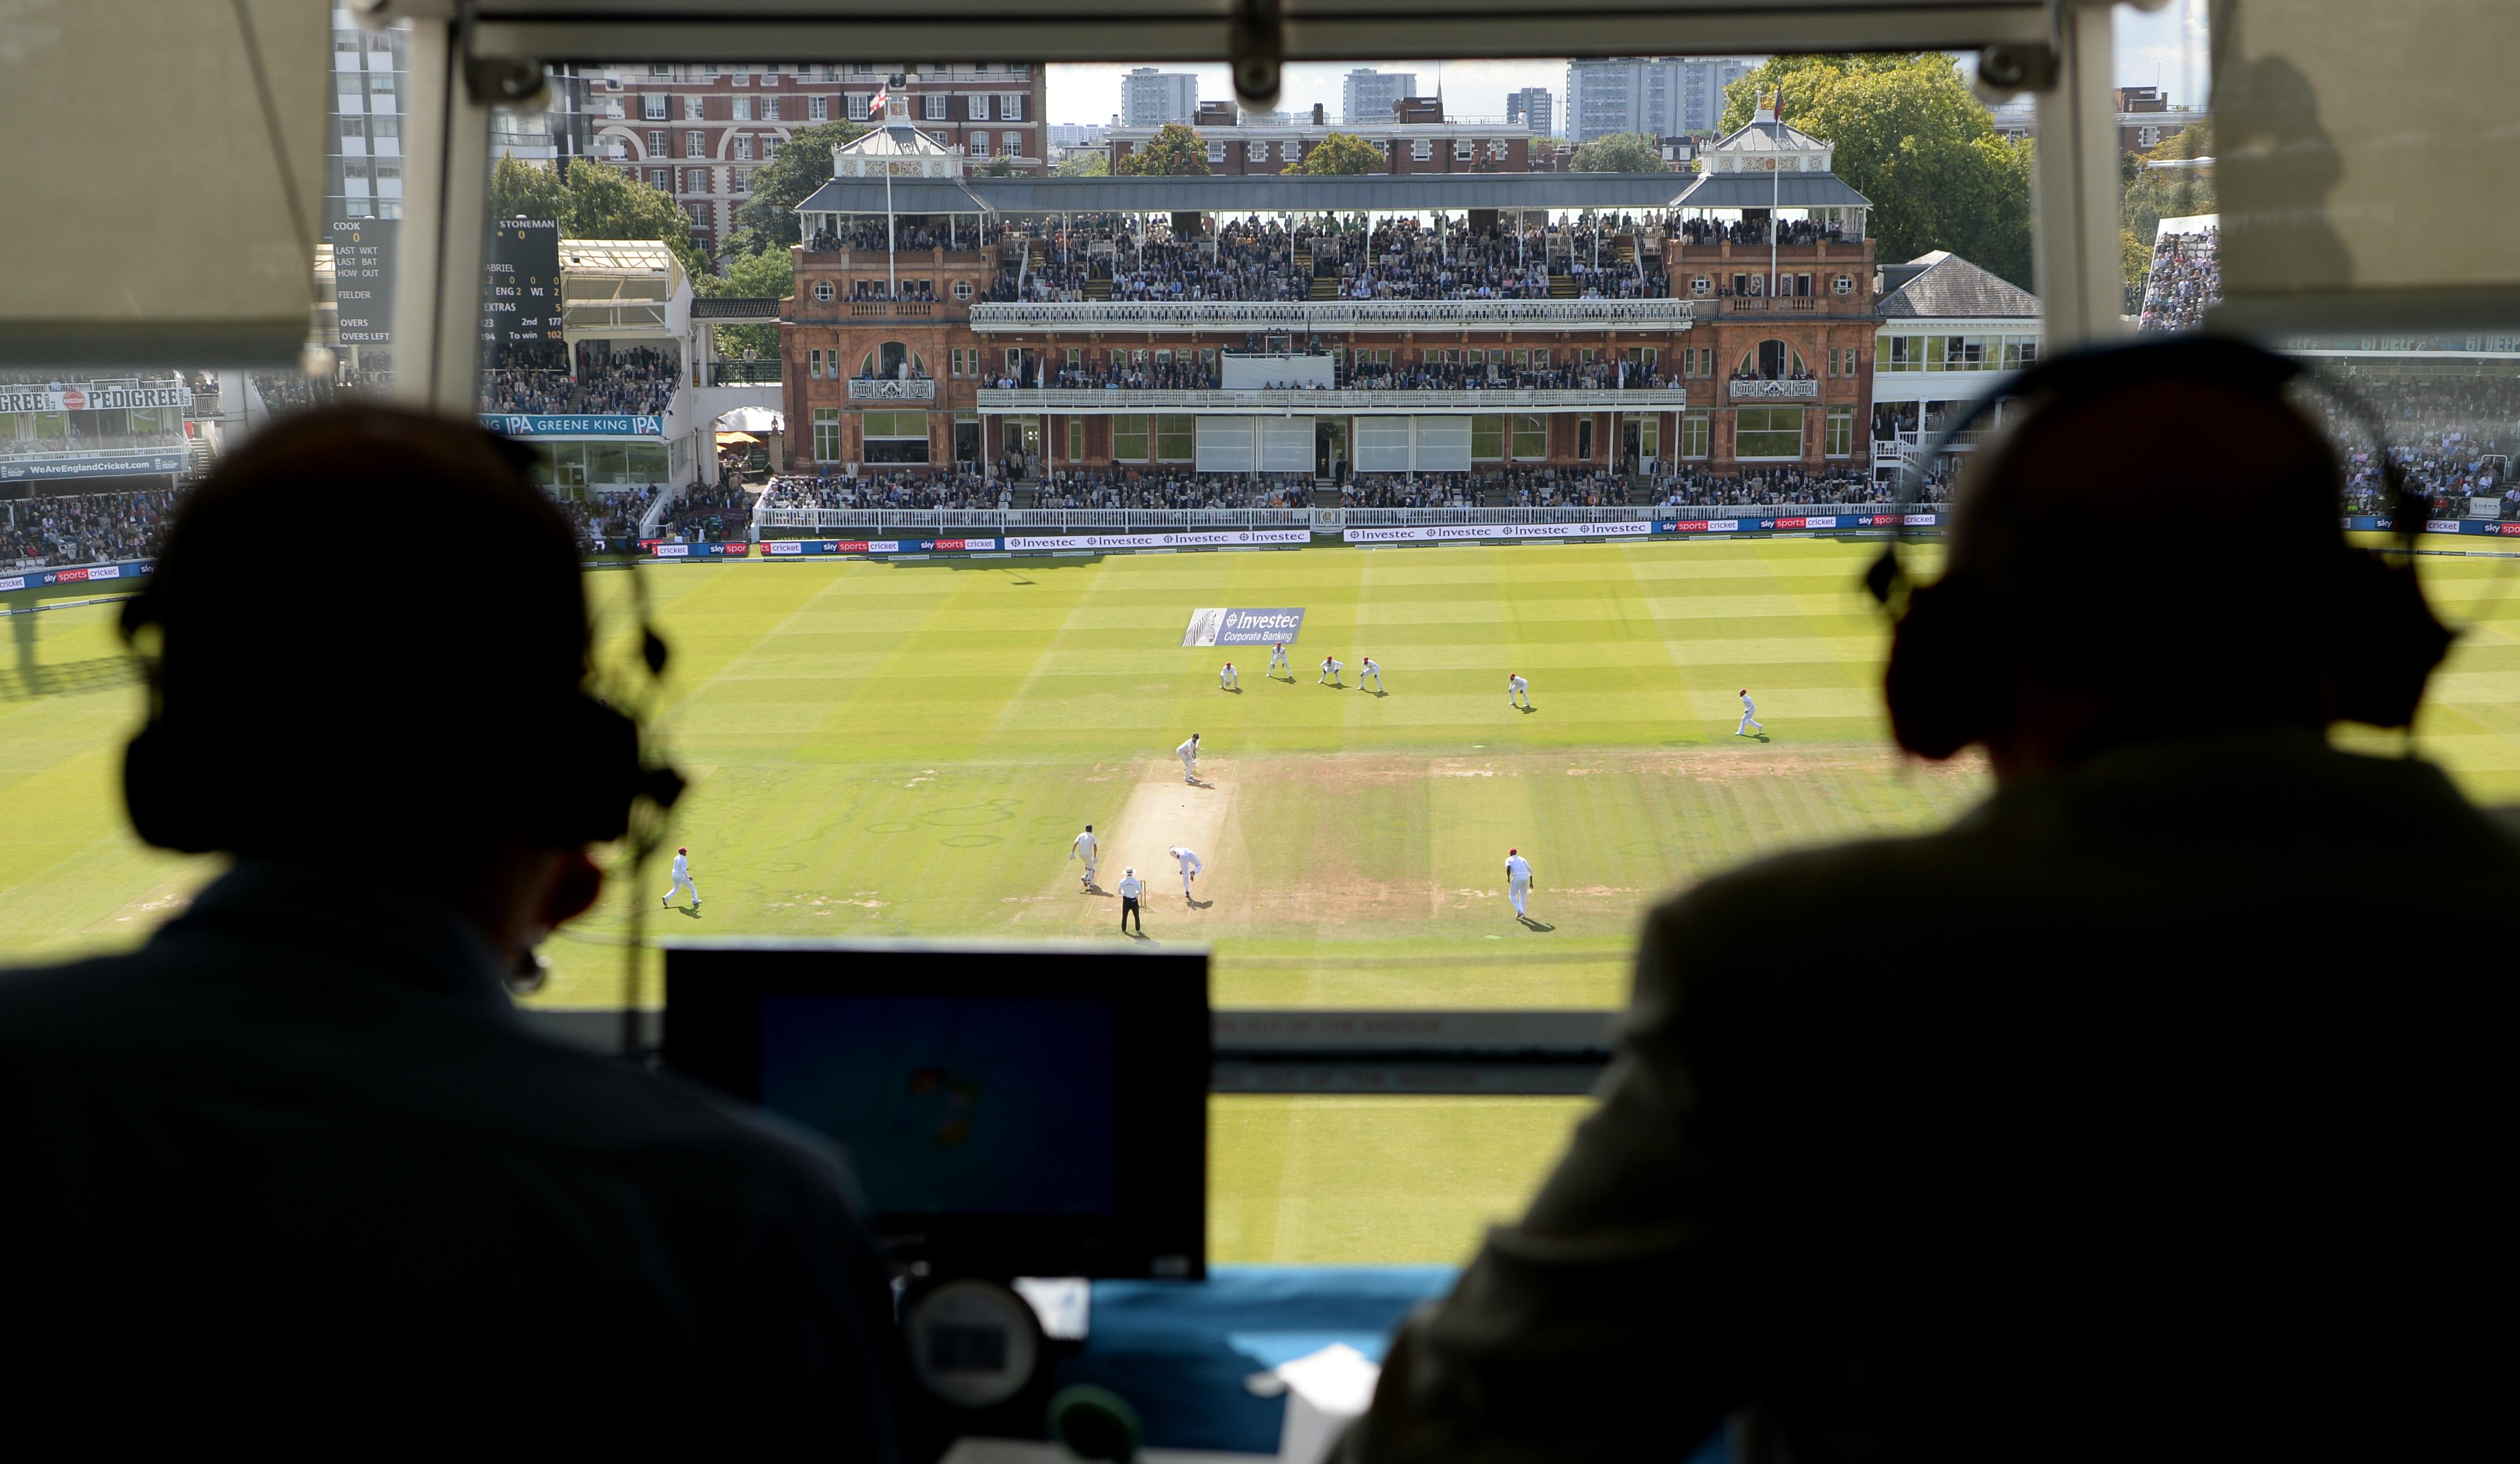 England's victory against India in the second Test was even out-shadowed by one reader's letter sent in to Test Match Special